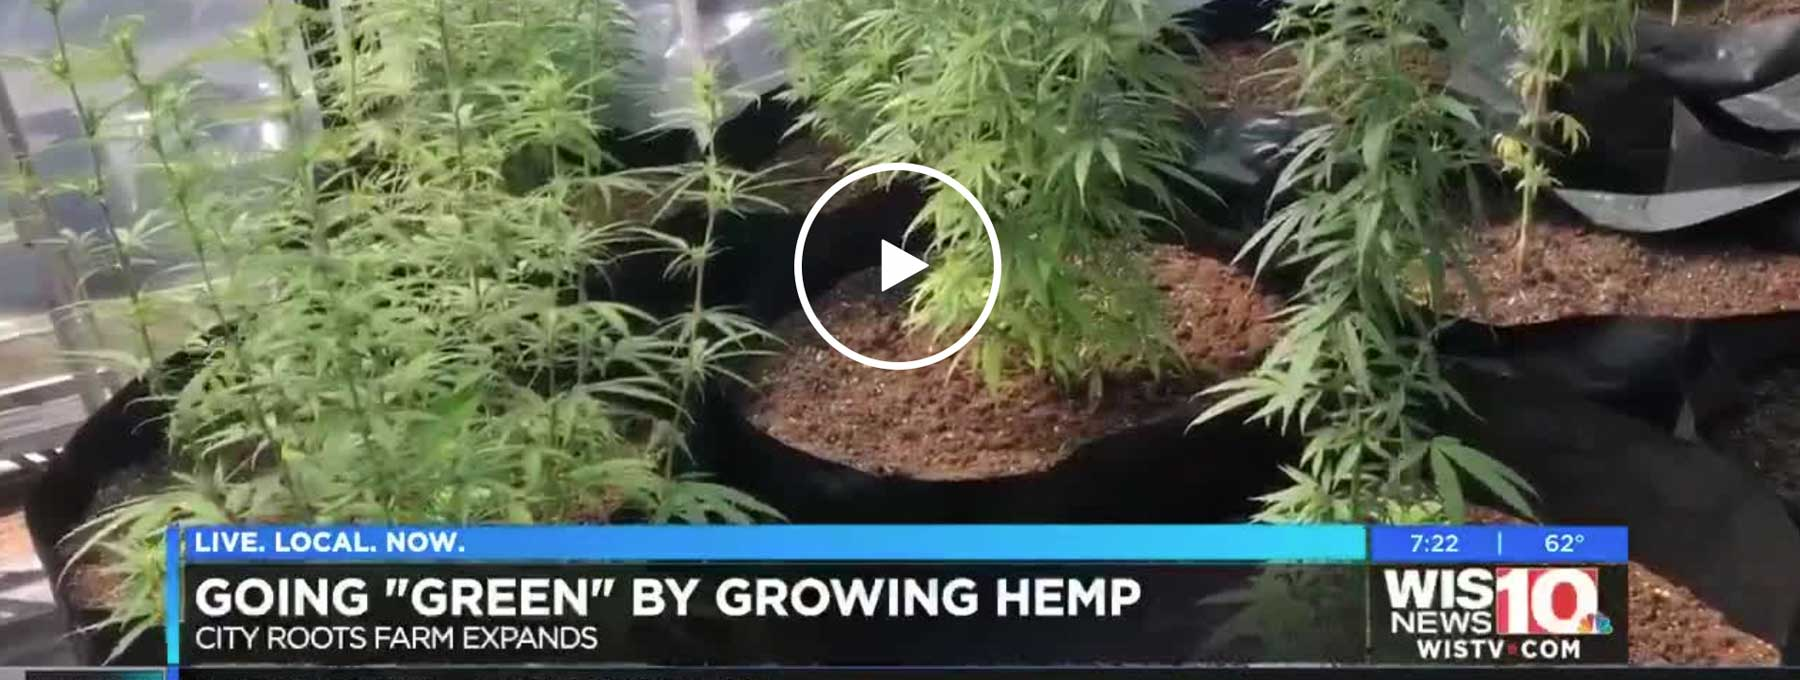 City Roots CBD Featured on WIS News